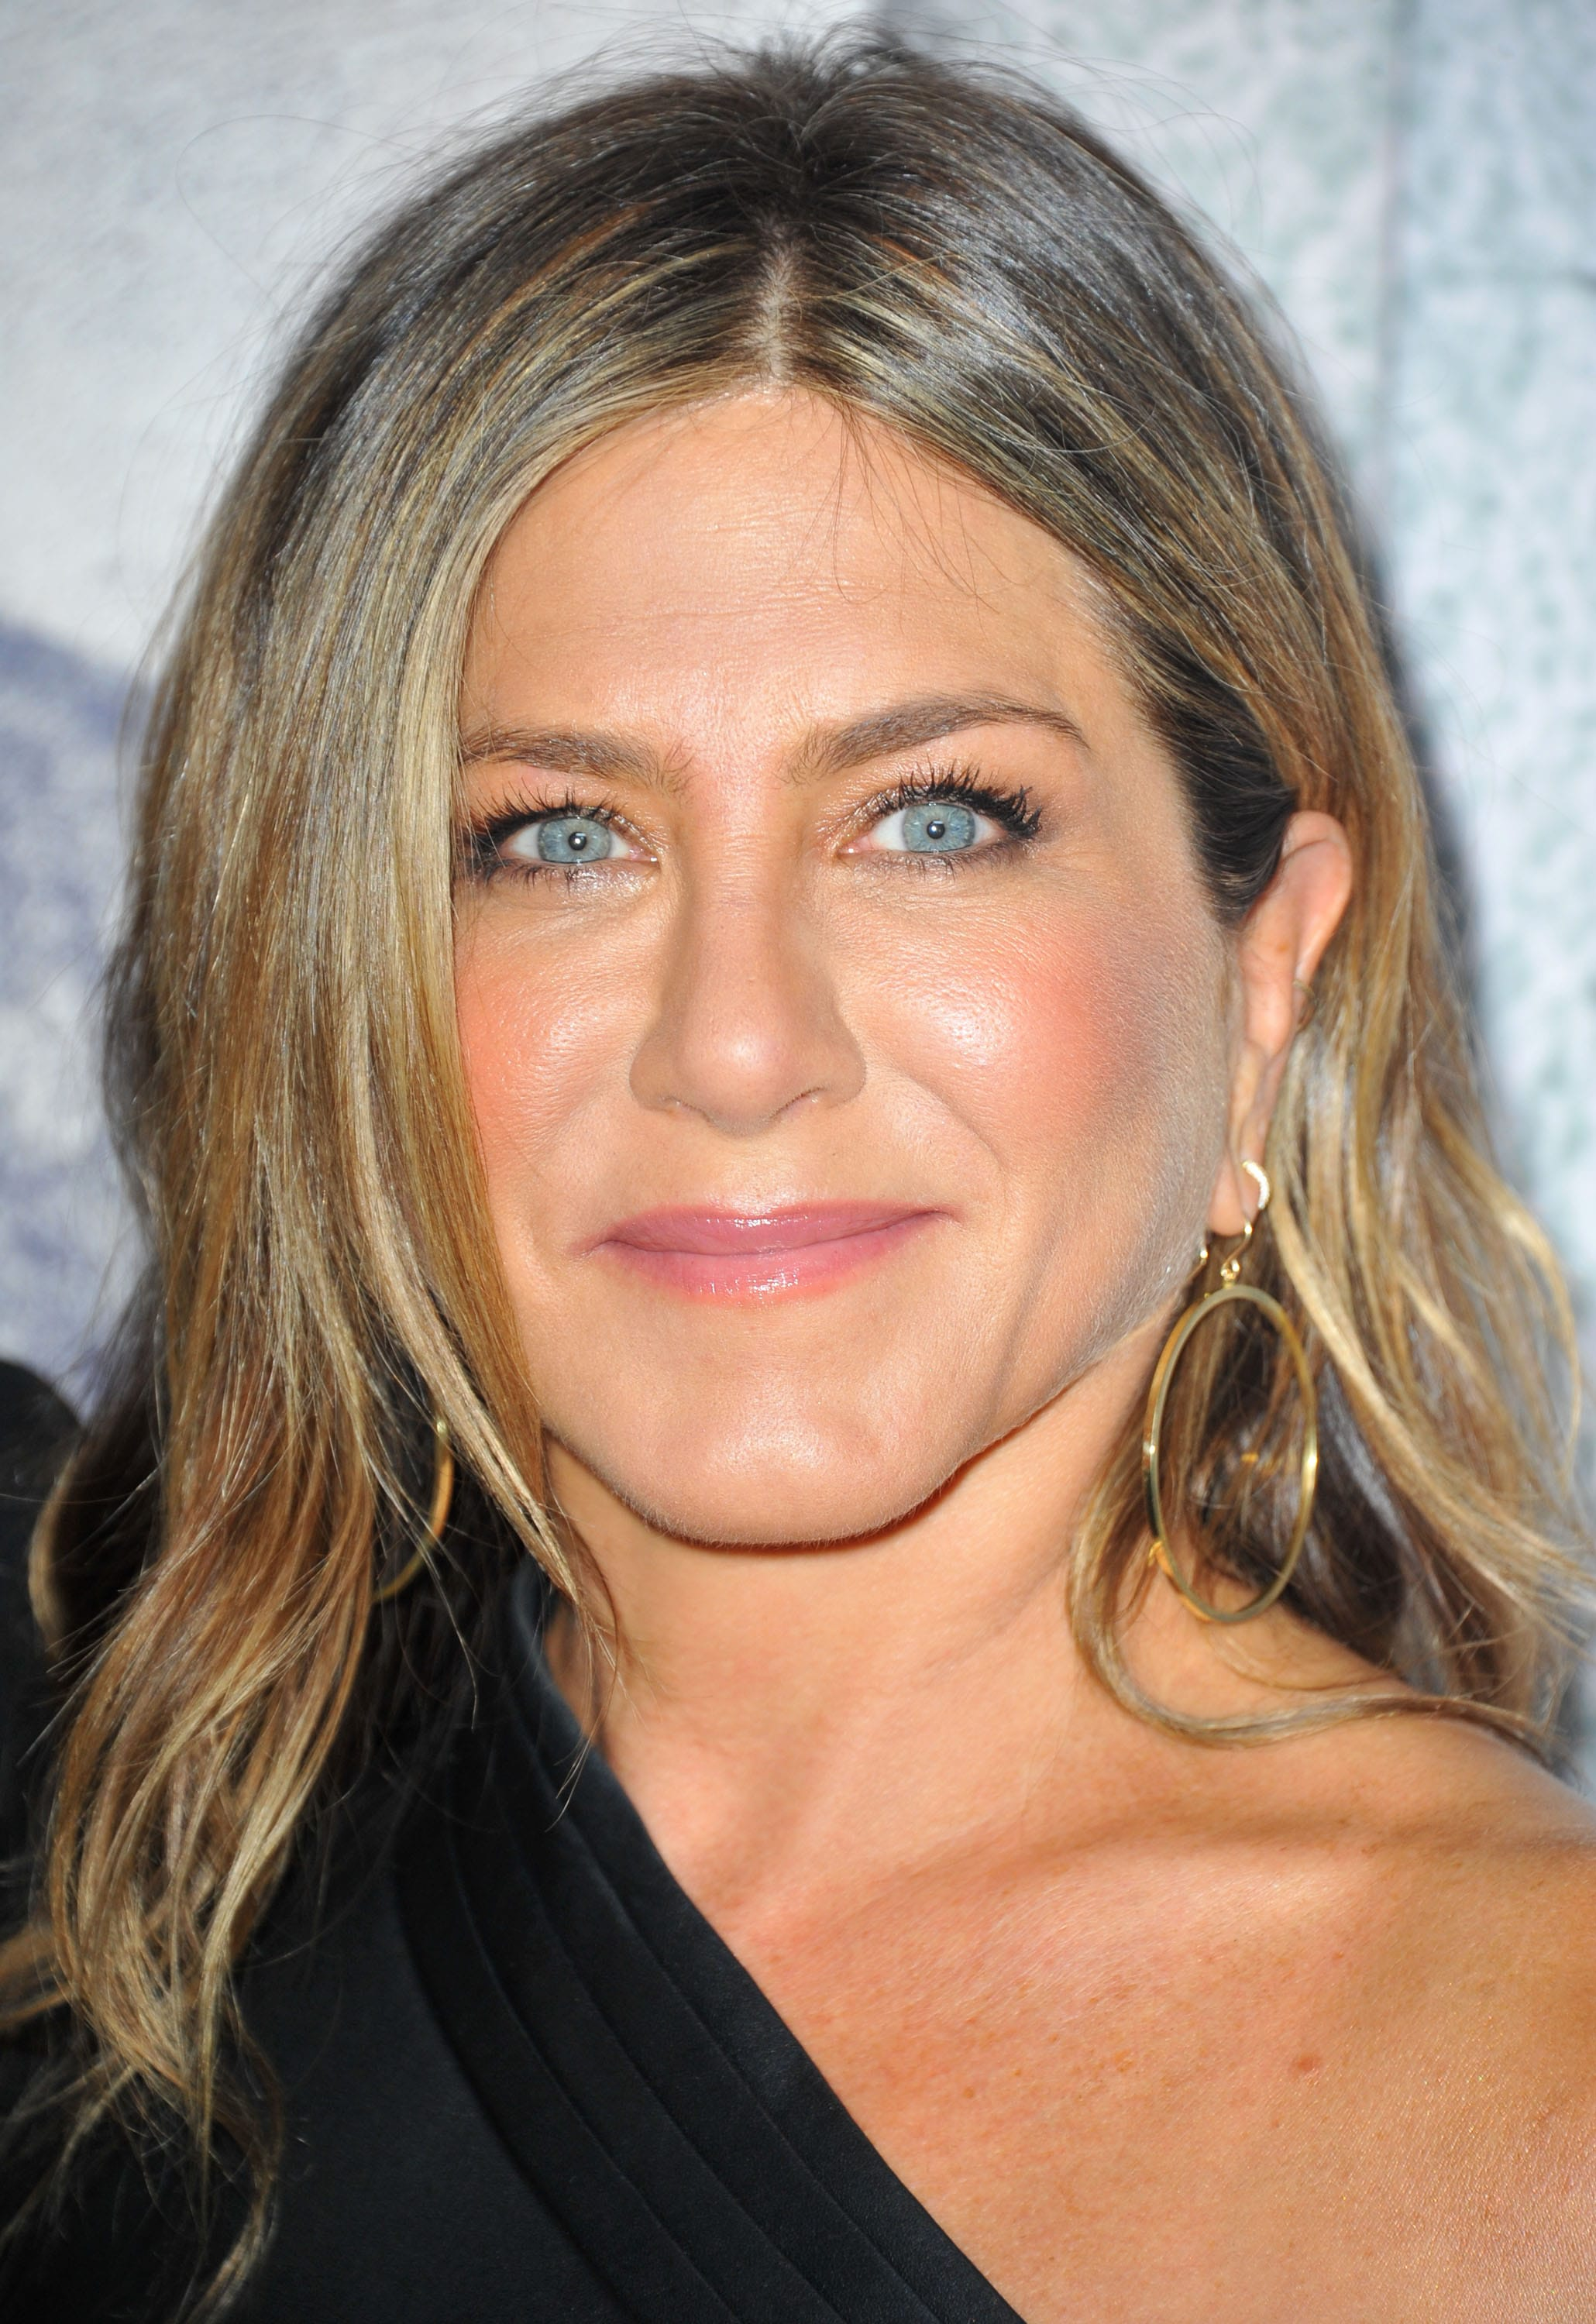 Jennifer Aniston wears her mid length blonde hair with brown highlights at LA premiere for The Leftovers